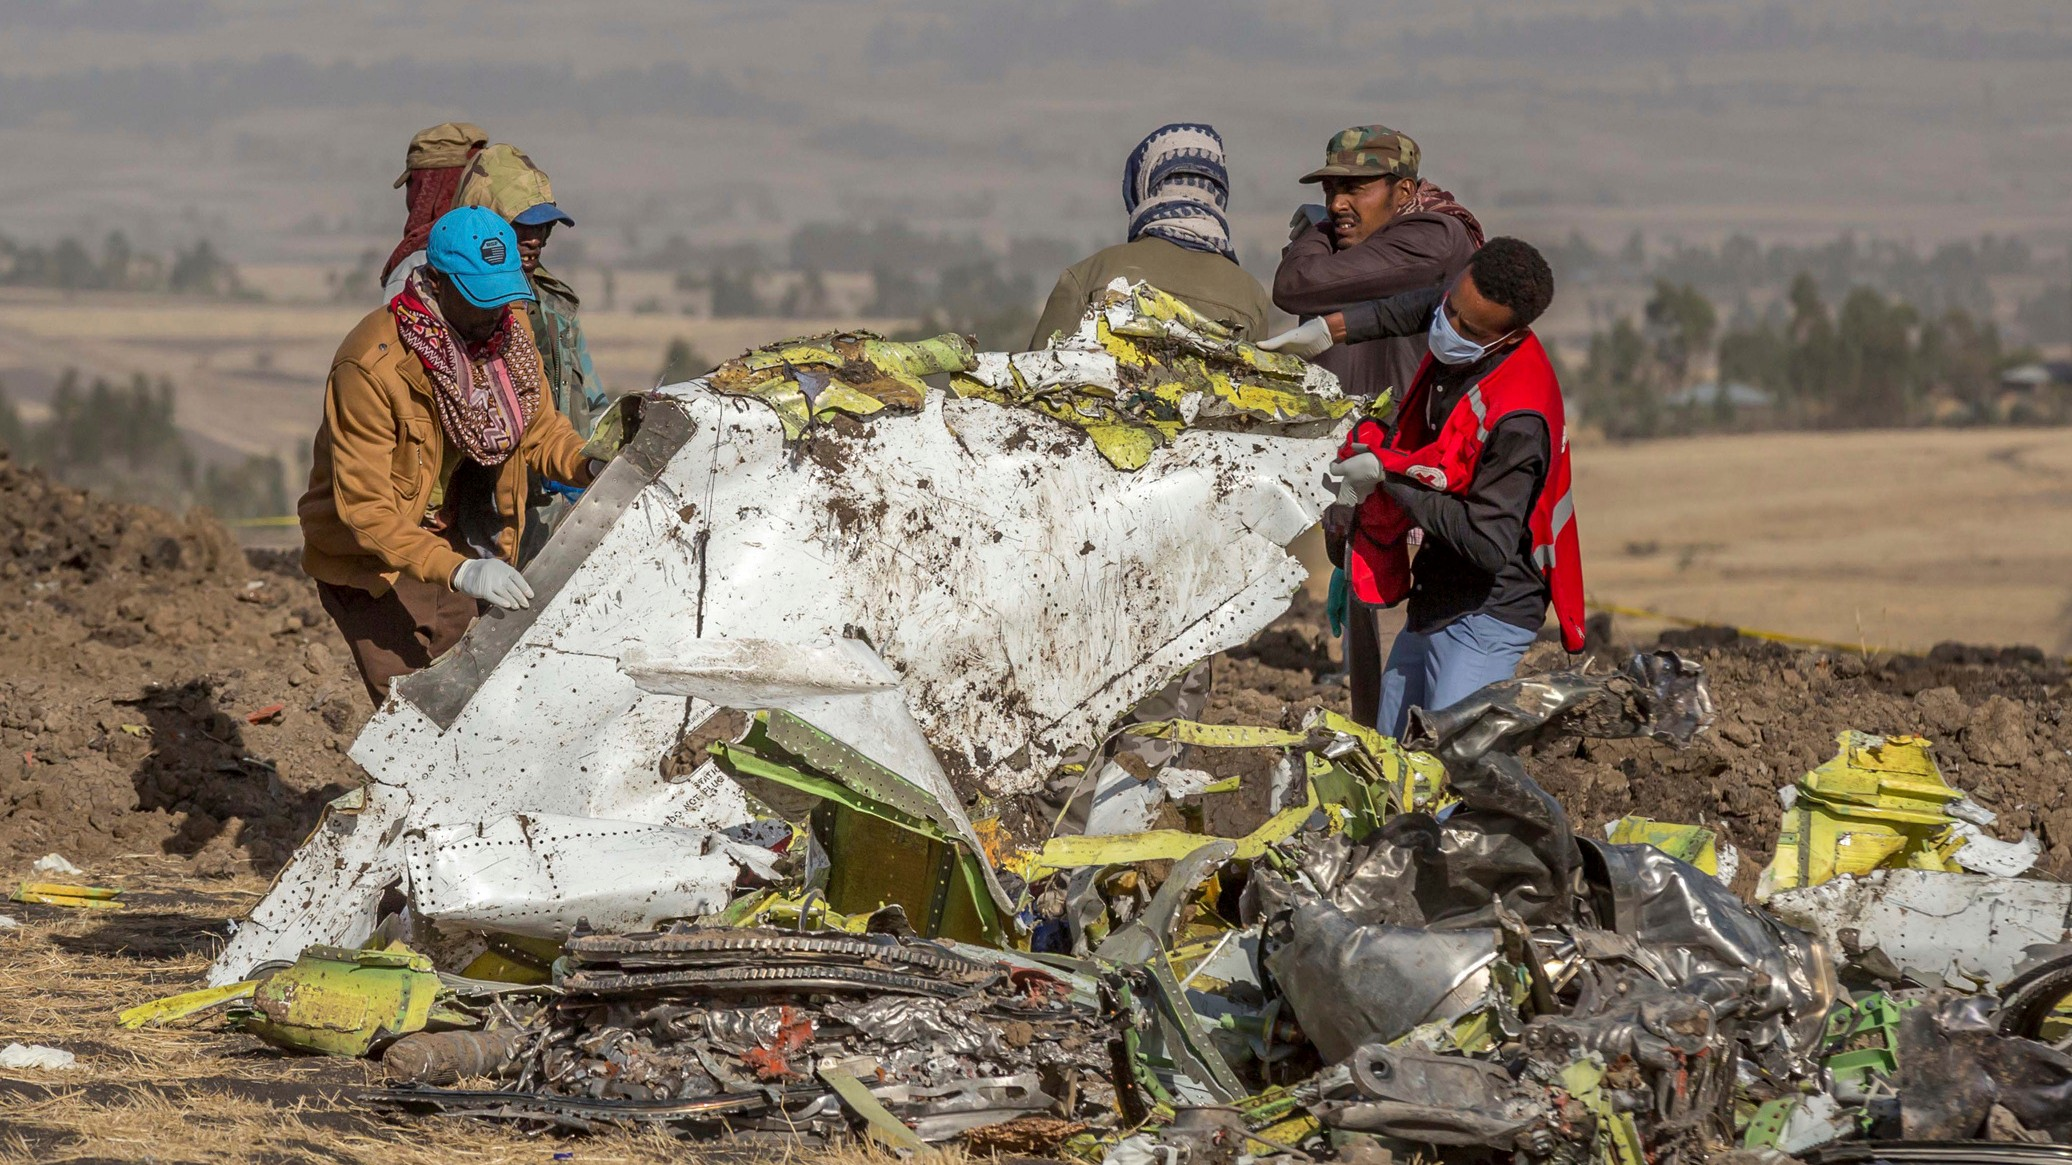 Boeing's anti-stall feature on 737 Max misfired during Ethiopian Airlines crash, report says